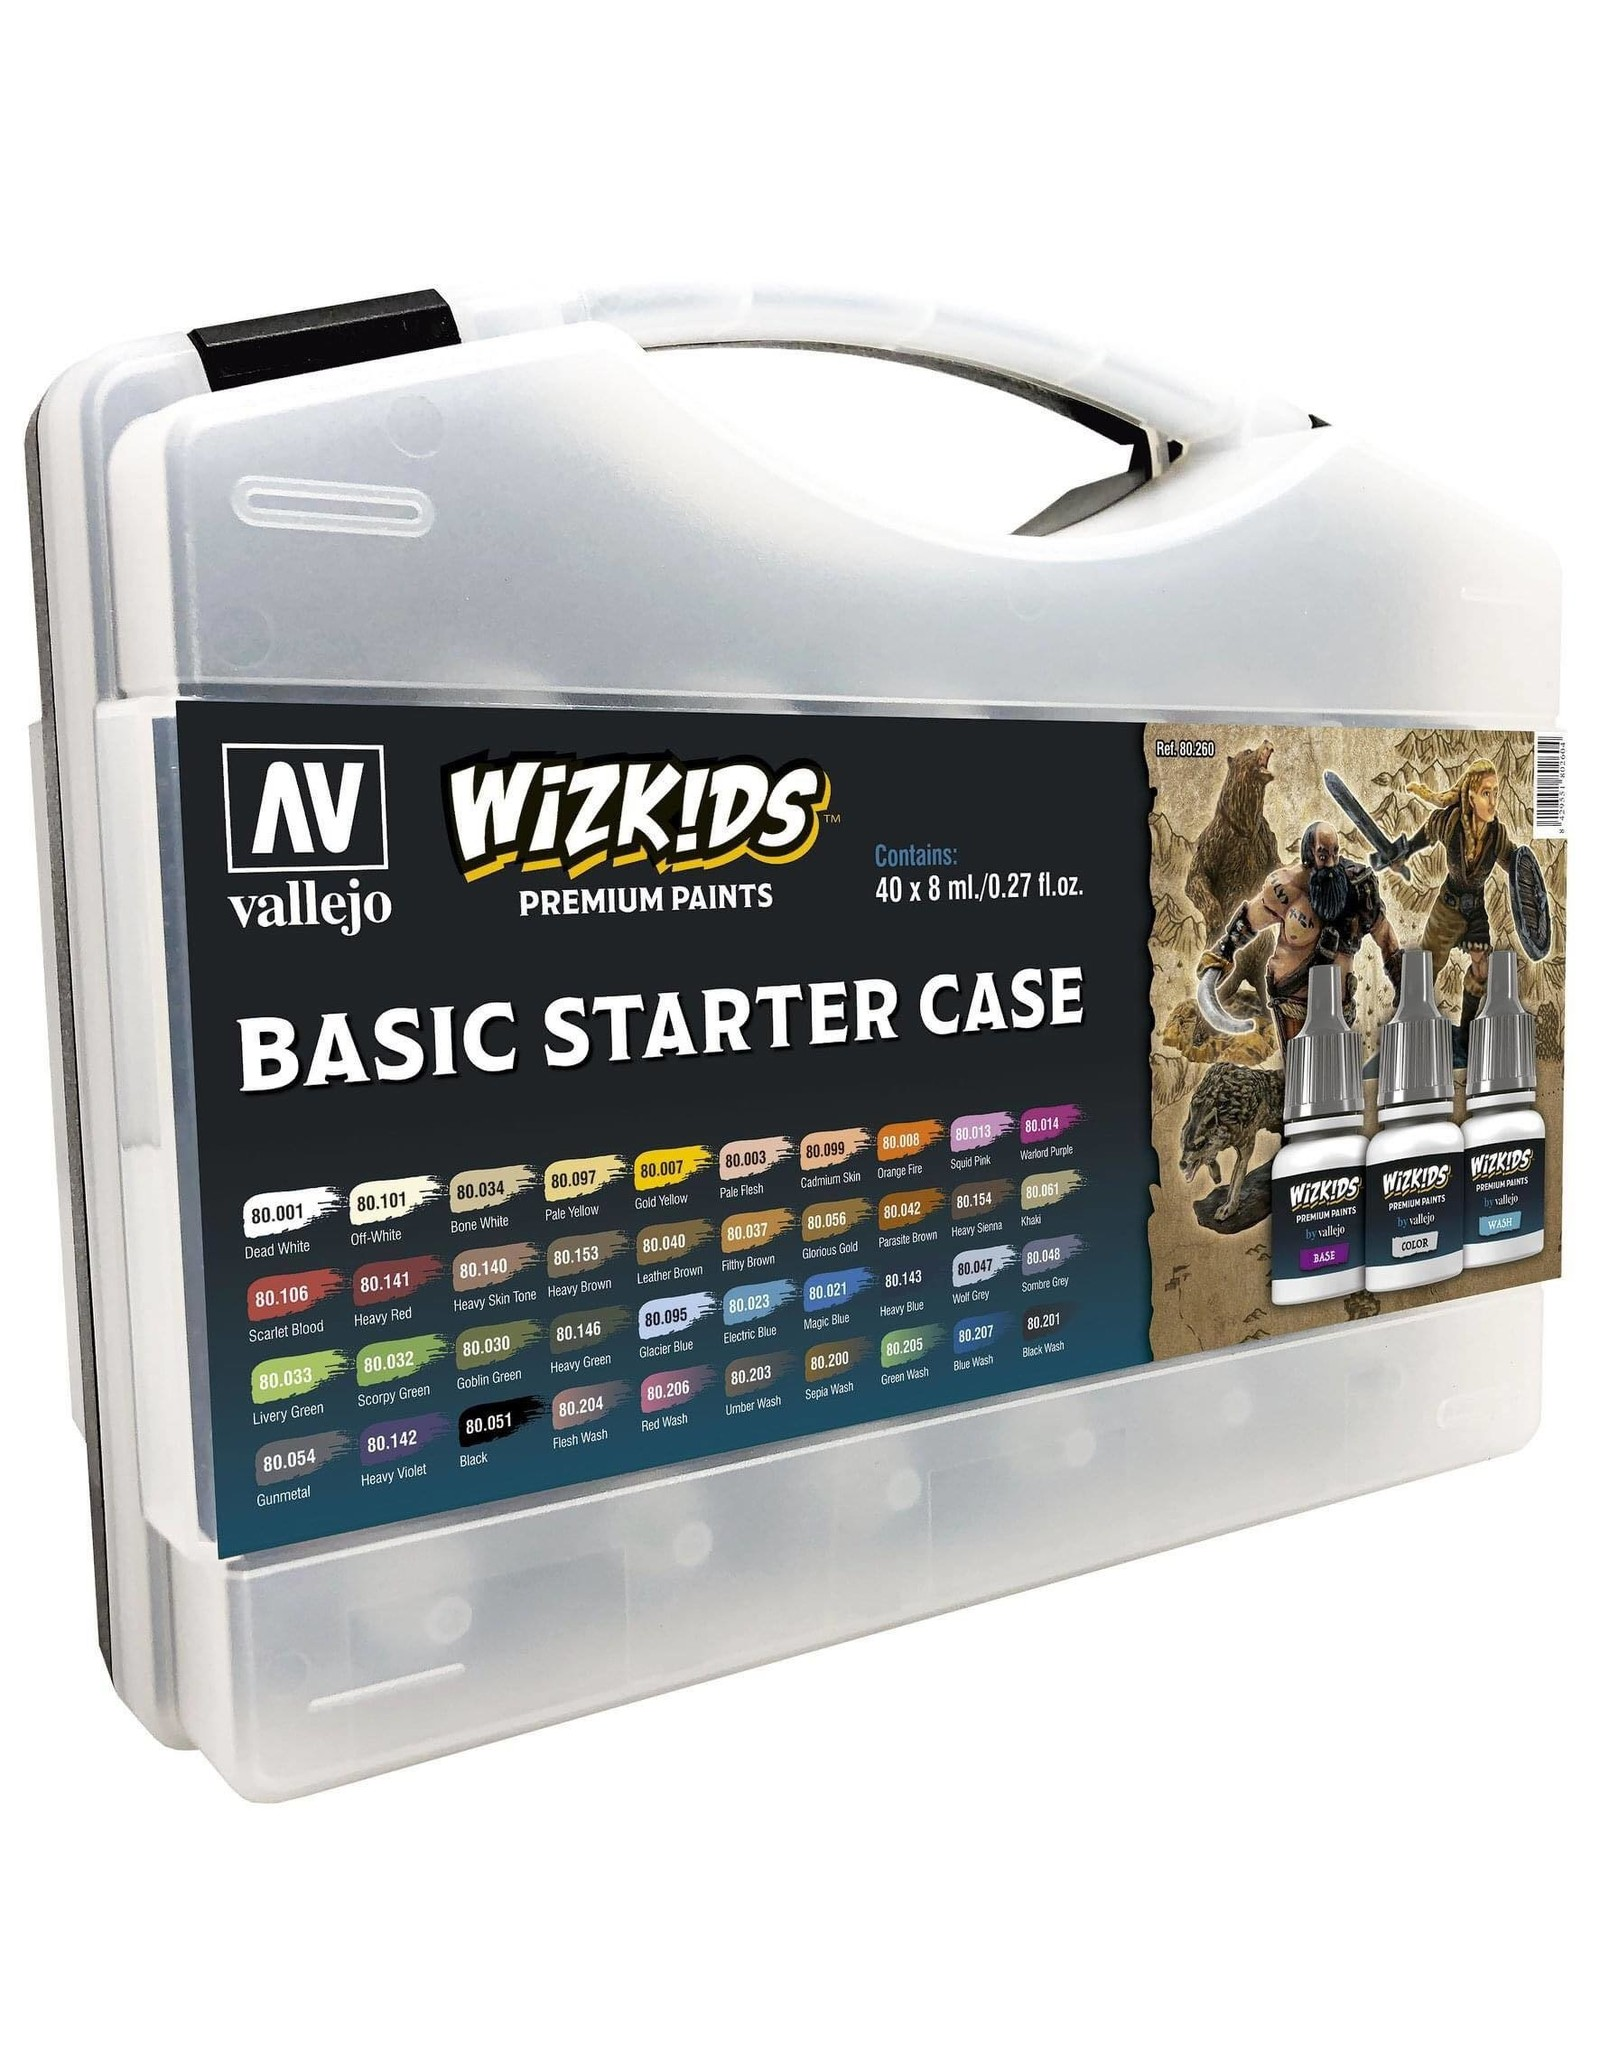 Vallejo Wizkids Vallejo Paint Set: Basic Starter Case